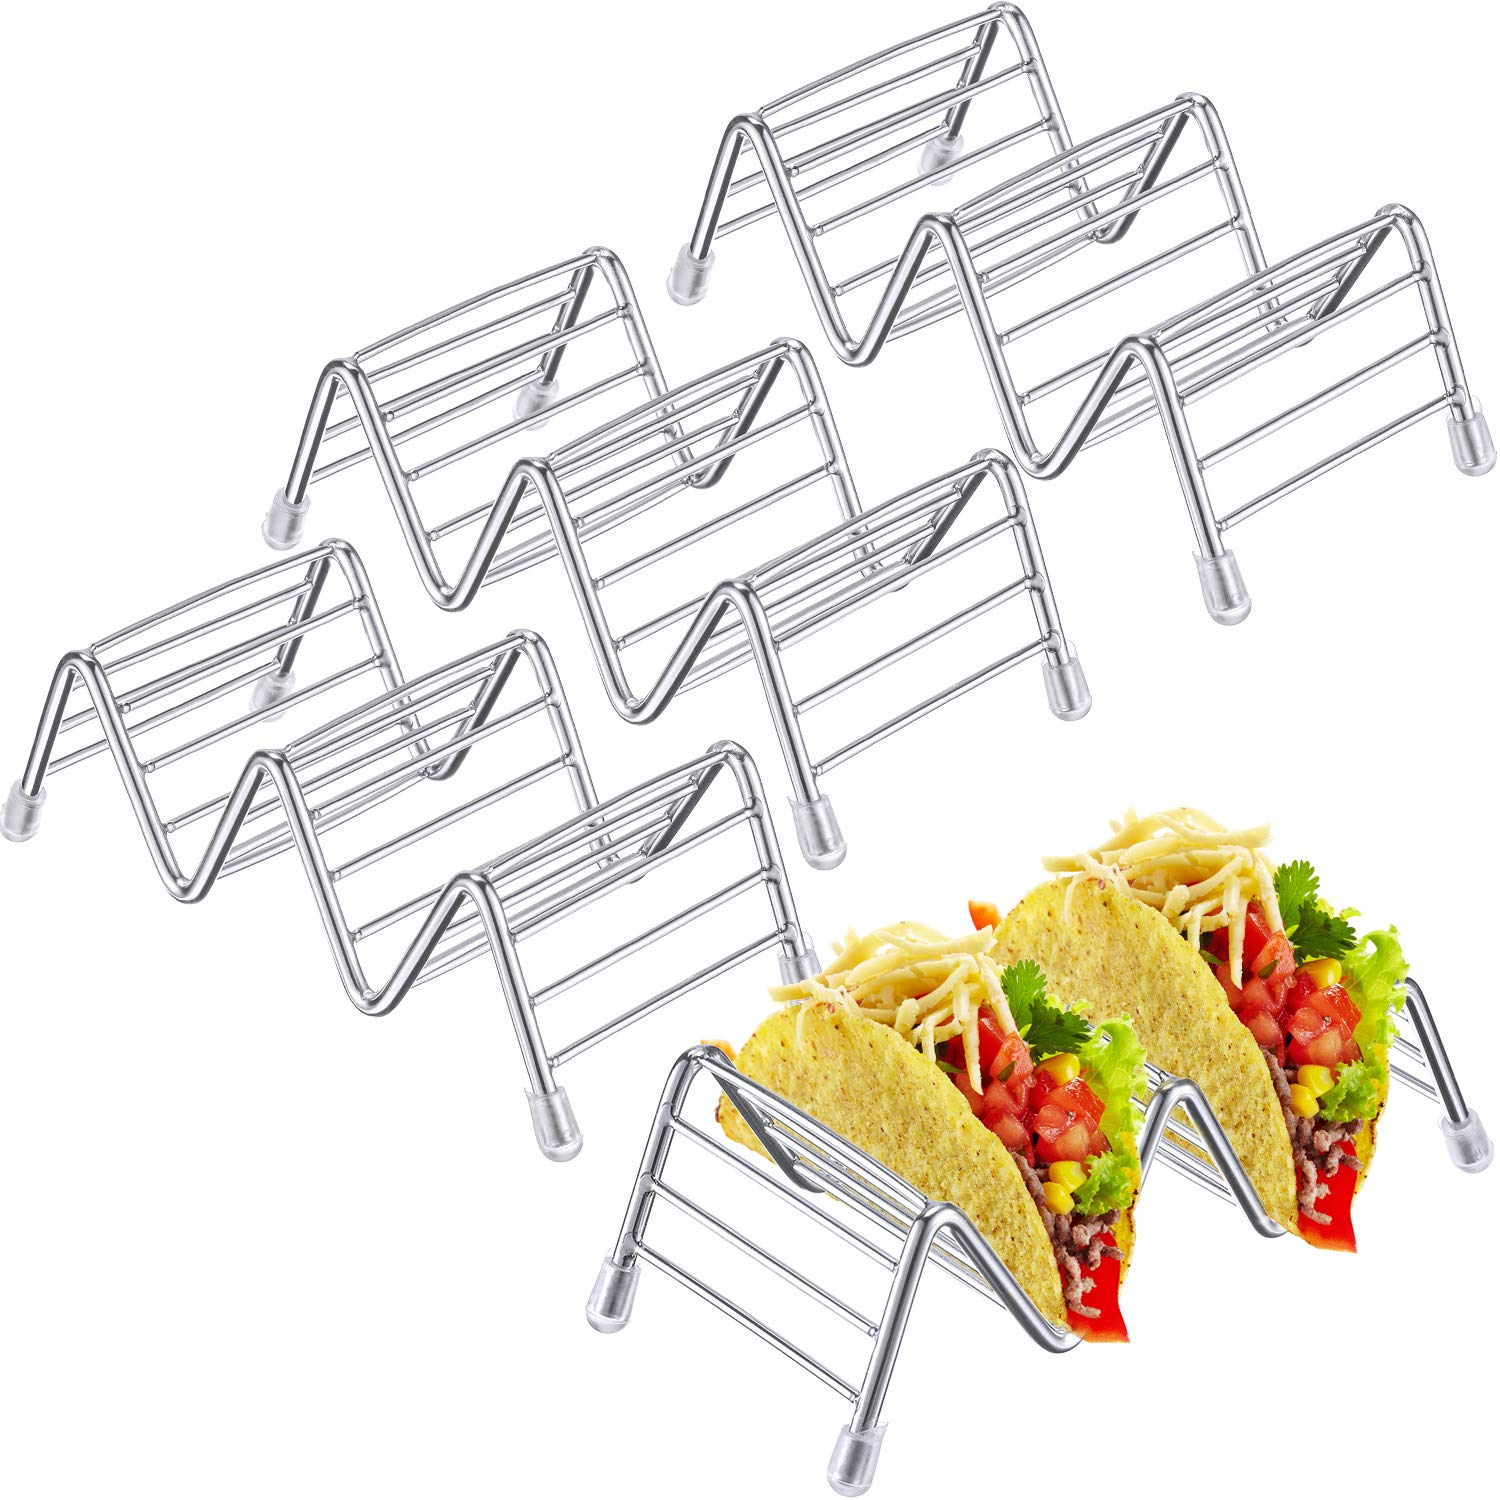 Pangda 4 Pack Stainless Steel Taco Holders Stand Taco Rack W Space for Hard or Soft Shell Tacos (Small)